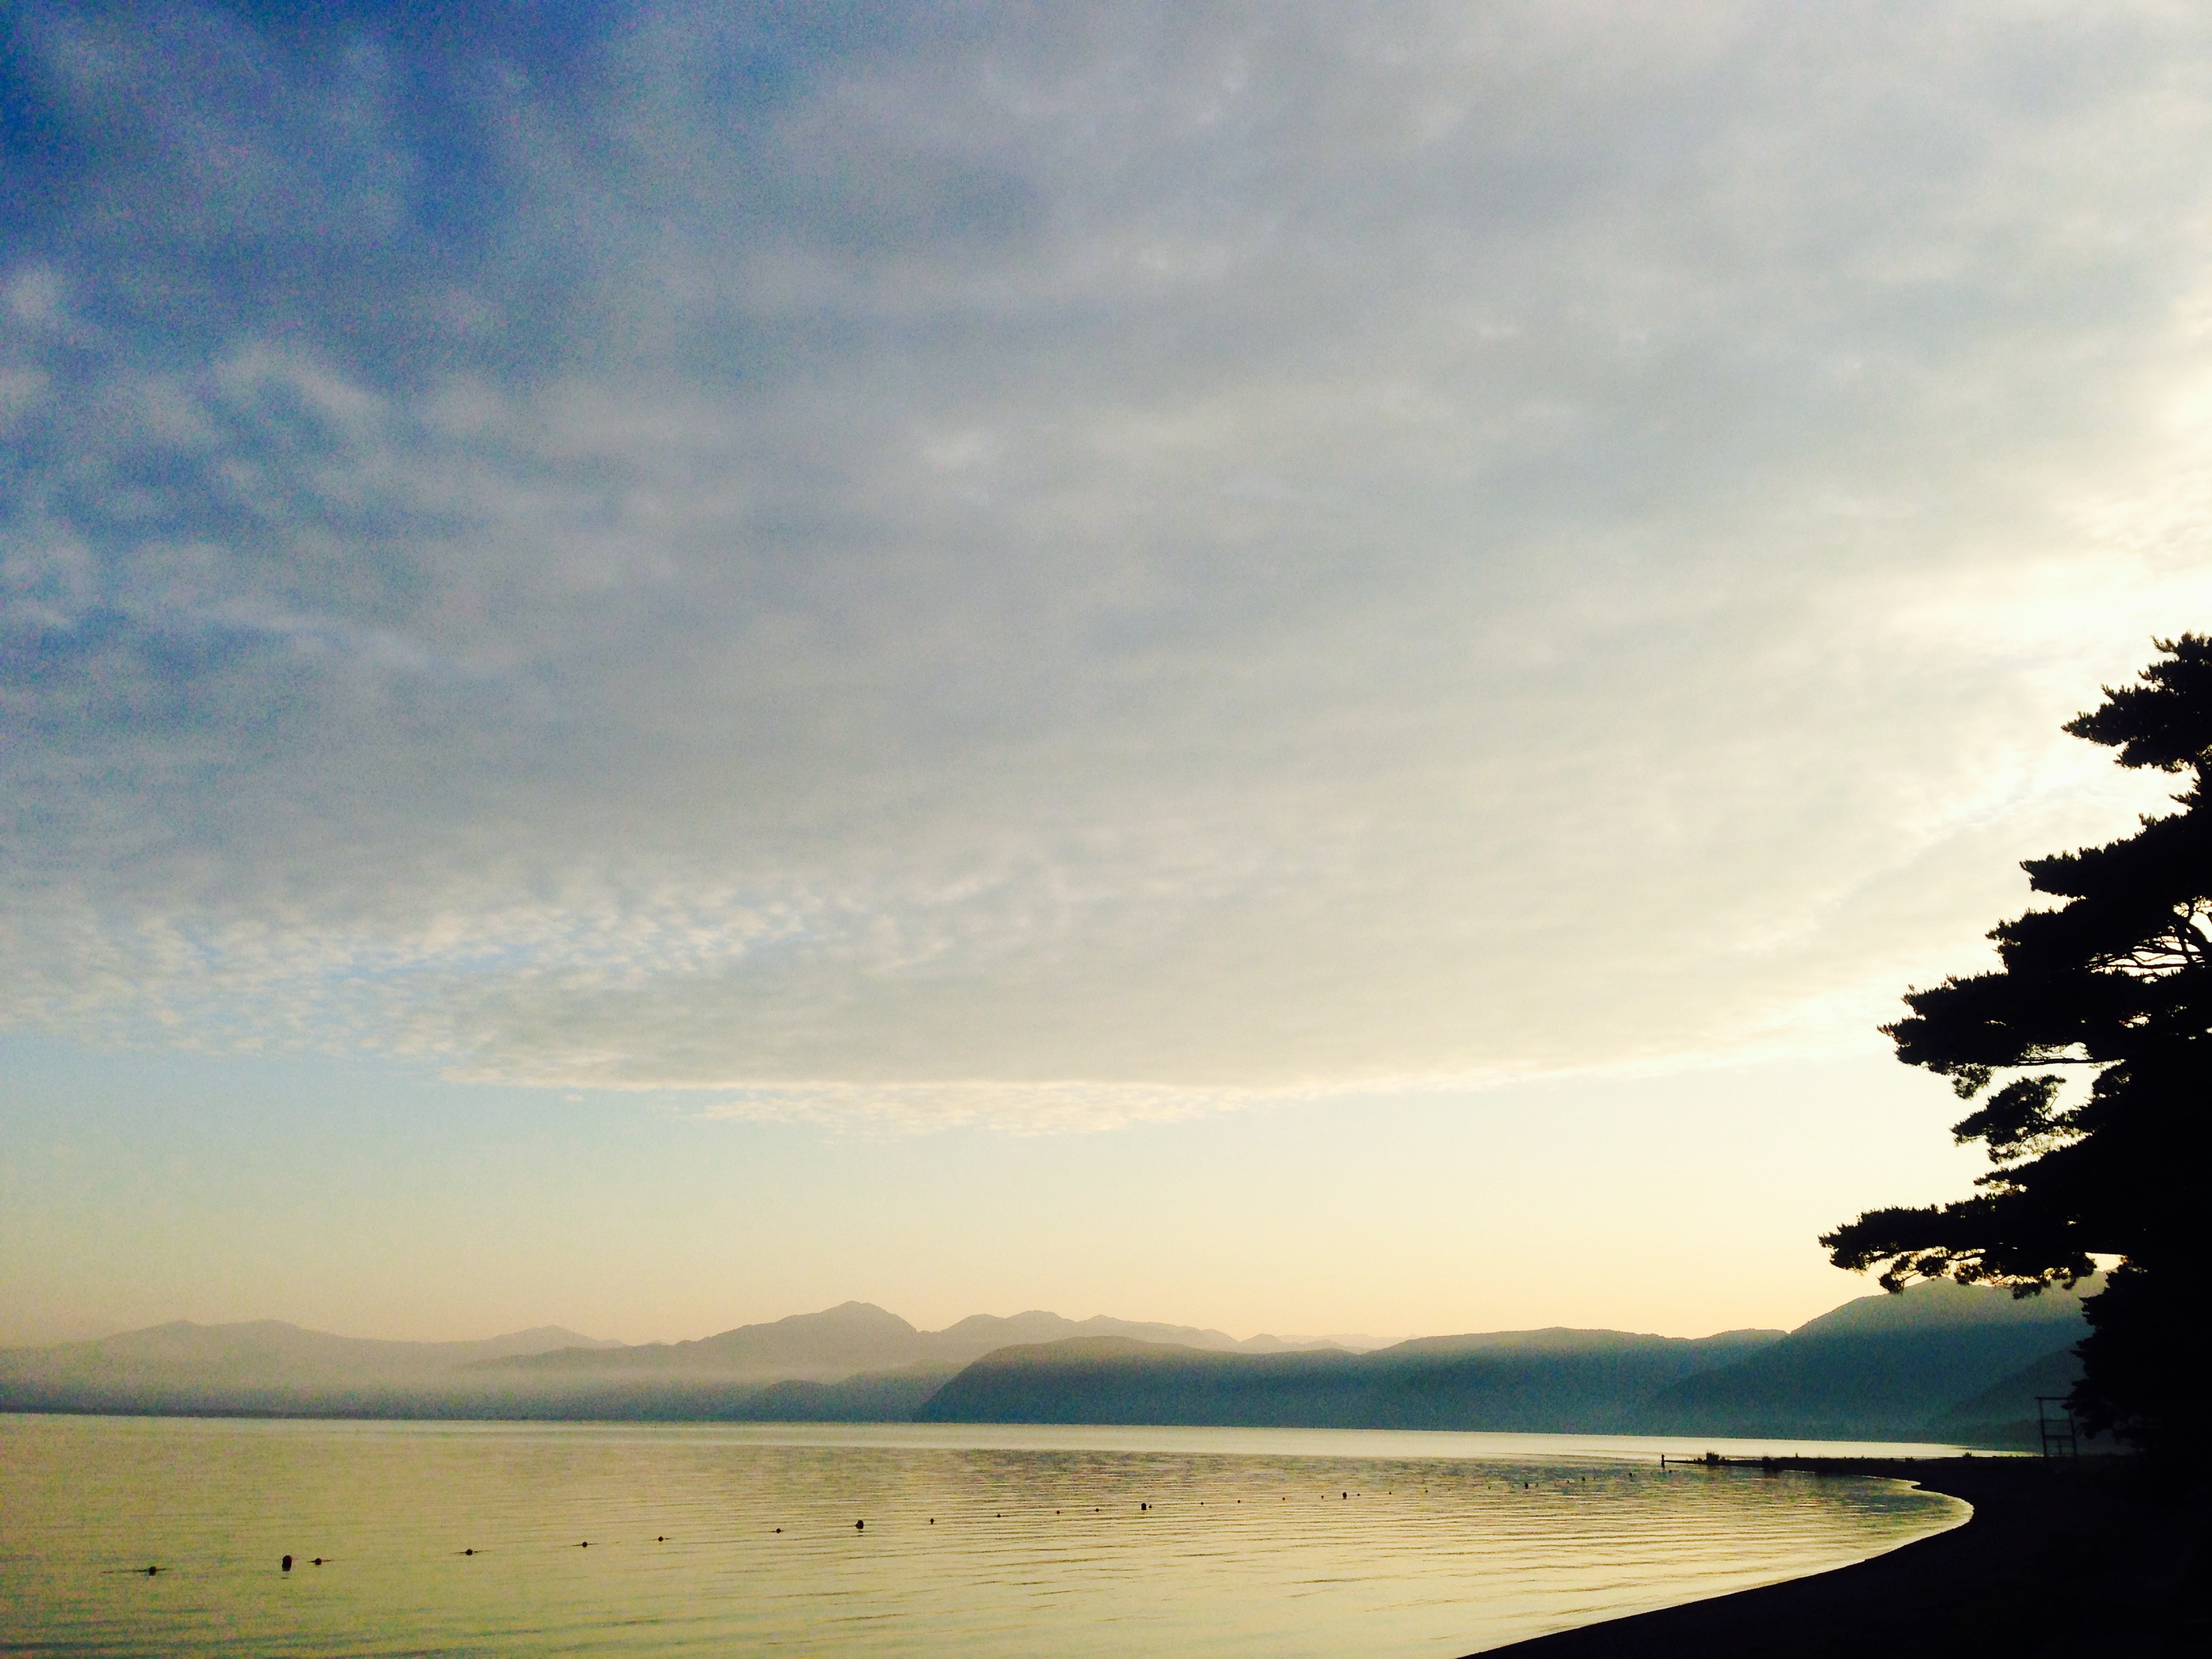 Sun Rise in Lake Inawashiro 2